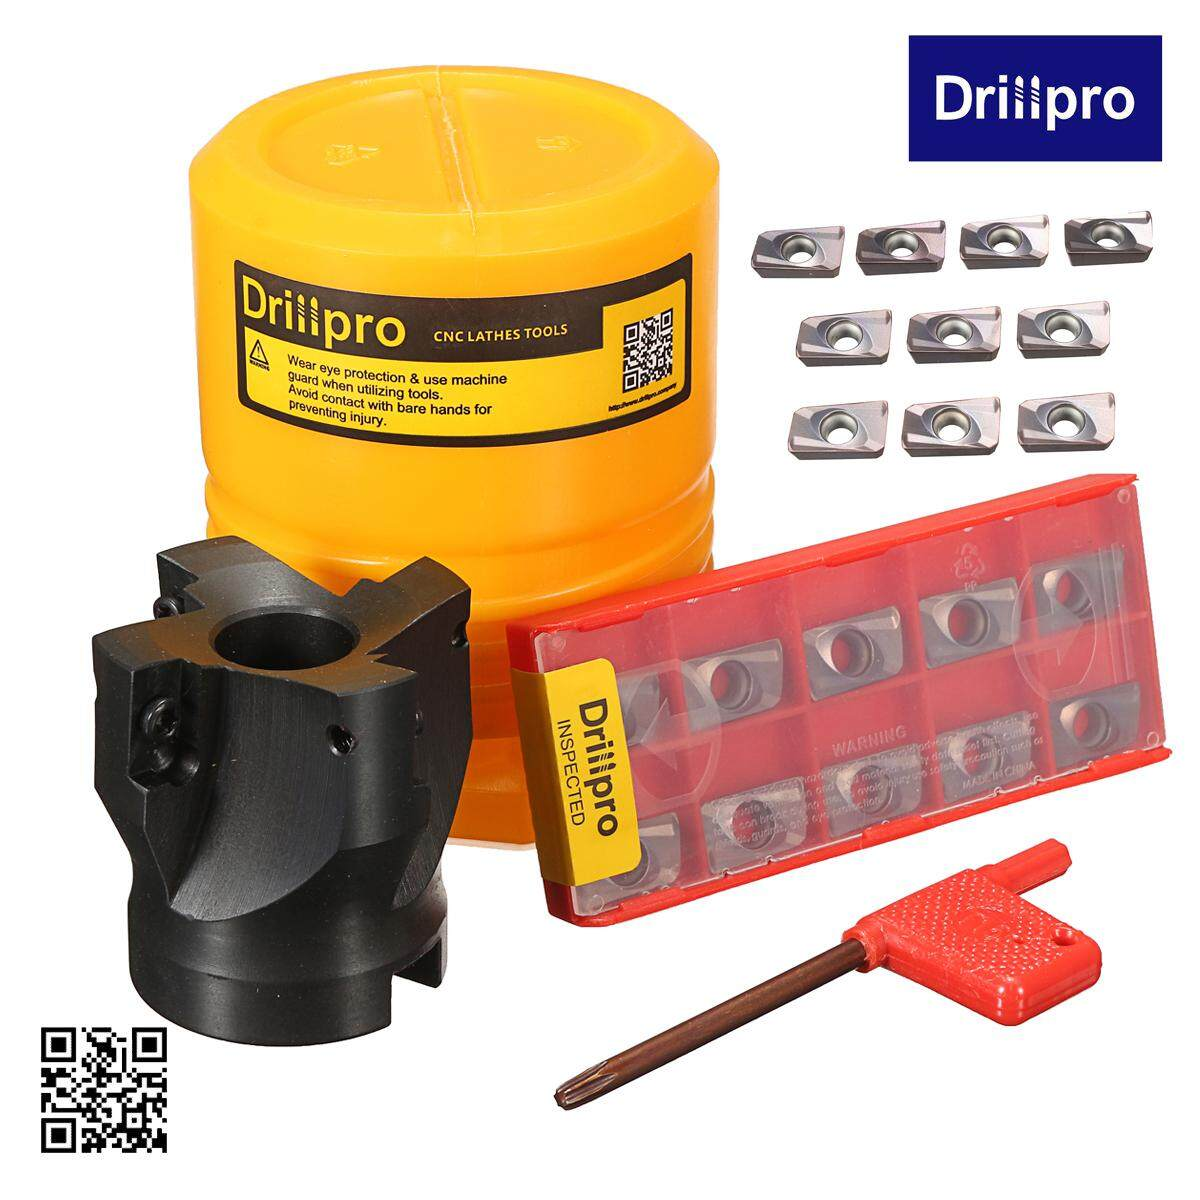 Drillpro 400R-50-22 4 Flute 90 Degree Face End Mill Cutter with 10pcs APMT1604 Carbide Iinserts and Spanner